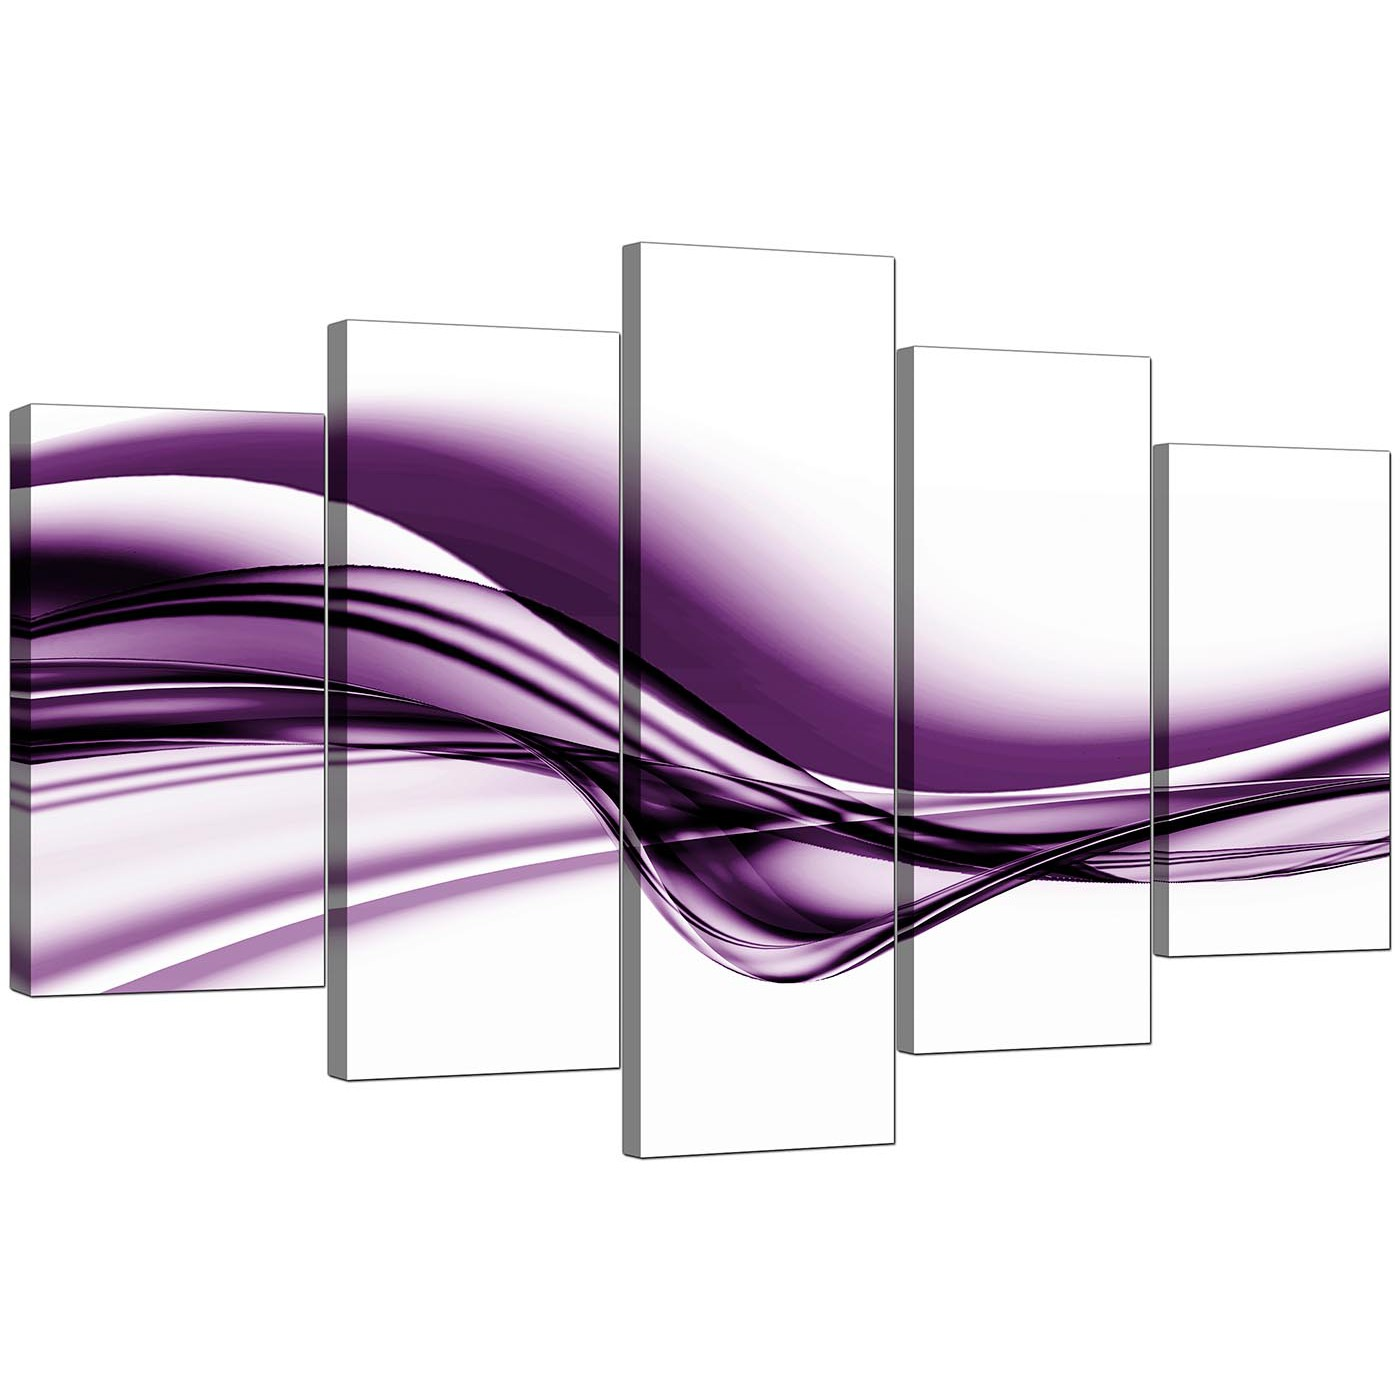 Extra Large Purple Abstract Canvas Prints - 5 Piece